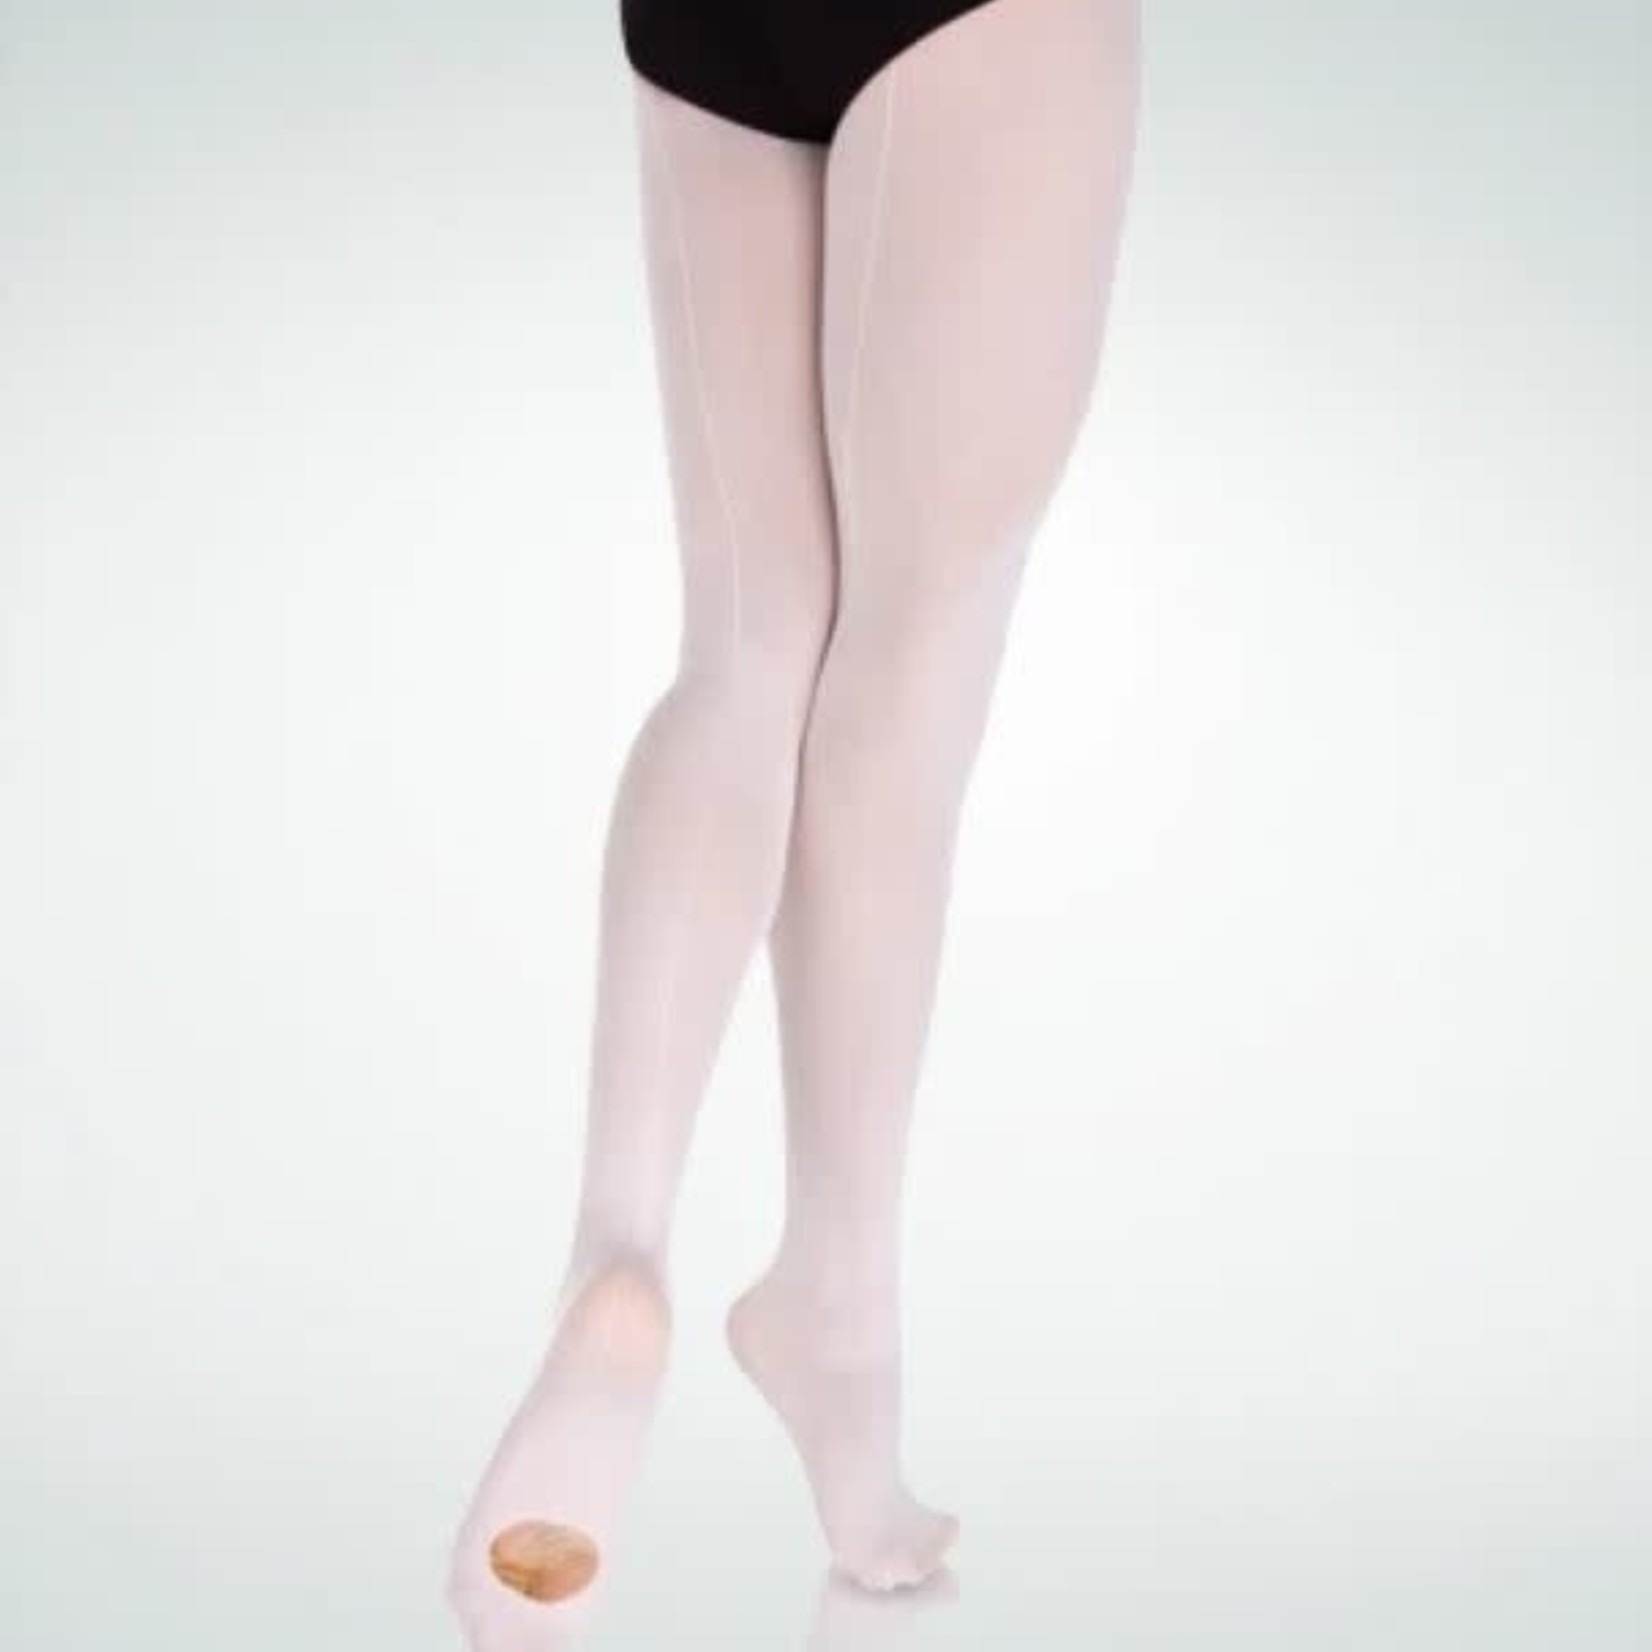 Body Wrappers Body Wrappers C39 Child Seamed Convertible Tights